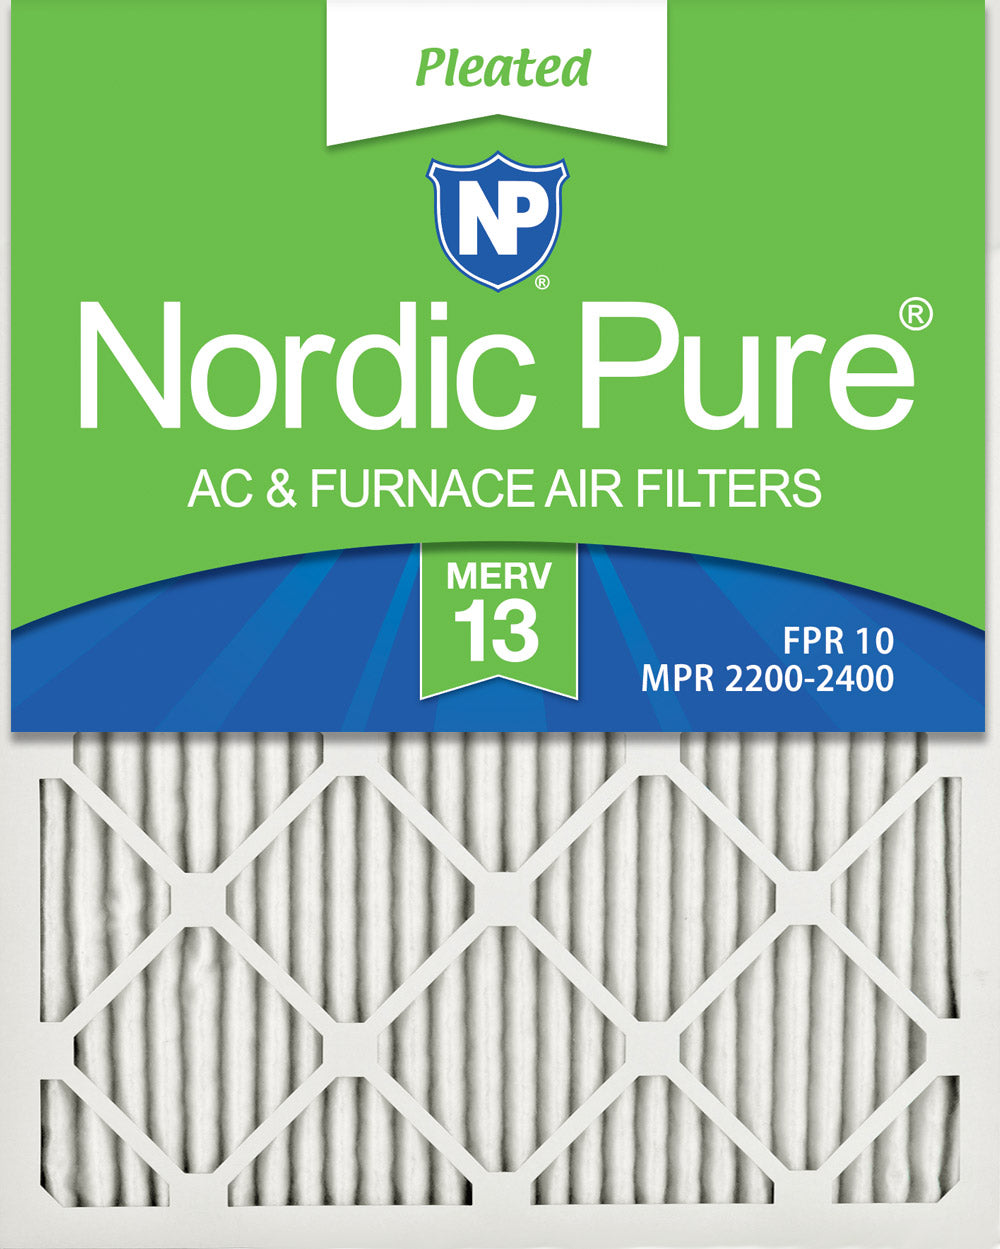 24x30x1 Pleated MERV 13 Air Filters 3 Pack